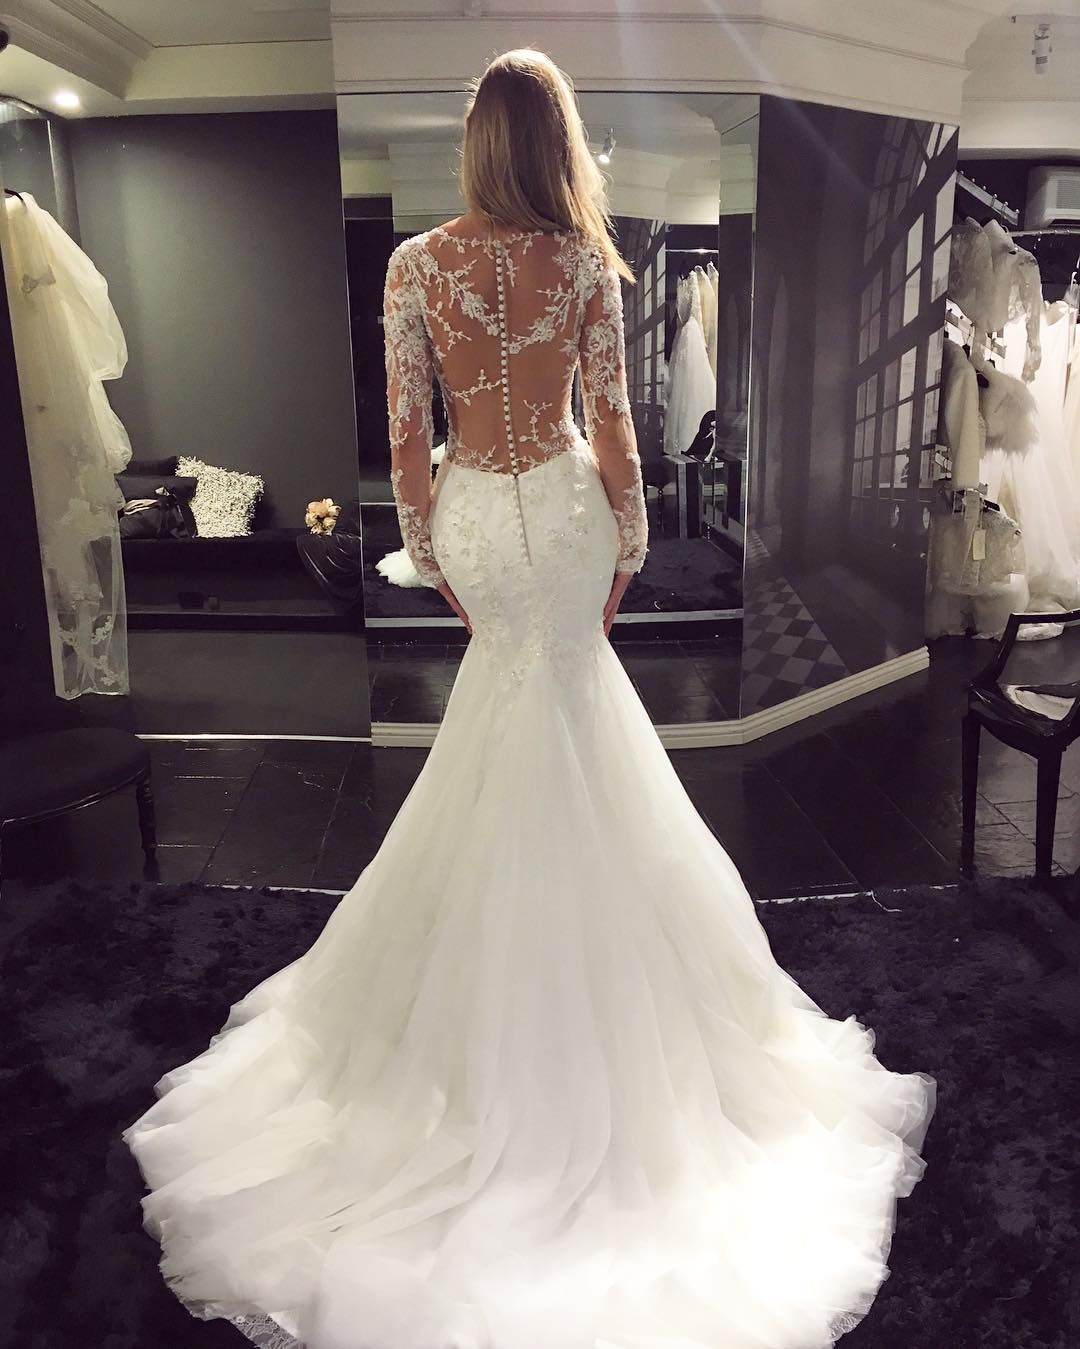 V-Neck Lace Appliqués Mermaid Wedding Dress With Long Sheer Sleeves 7